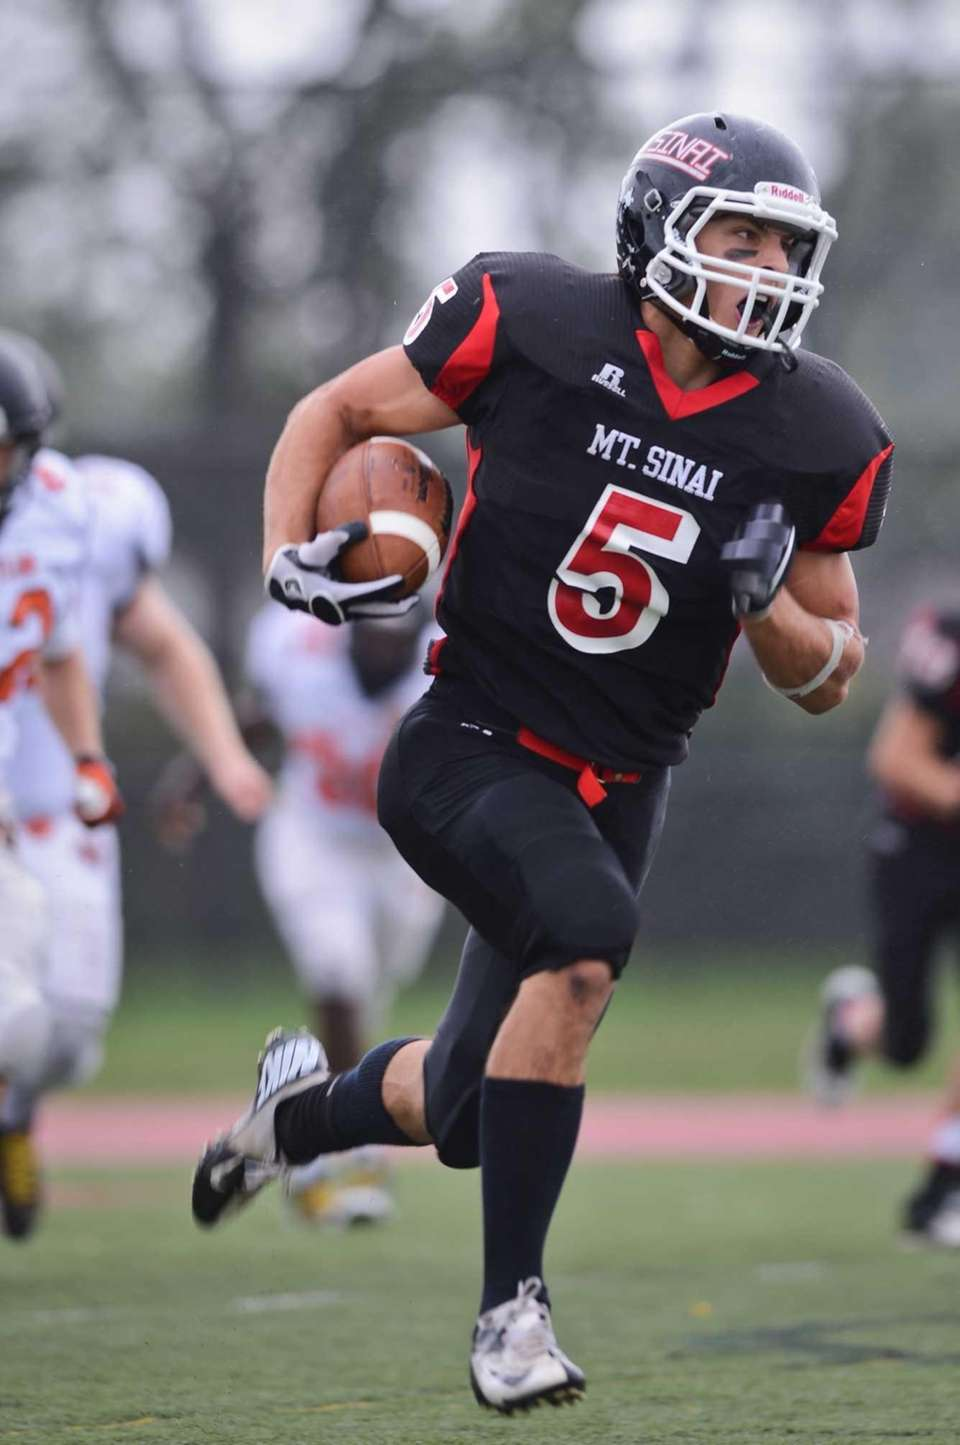 Mt. Sinai's Mark Donadio runs the ball against